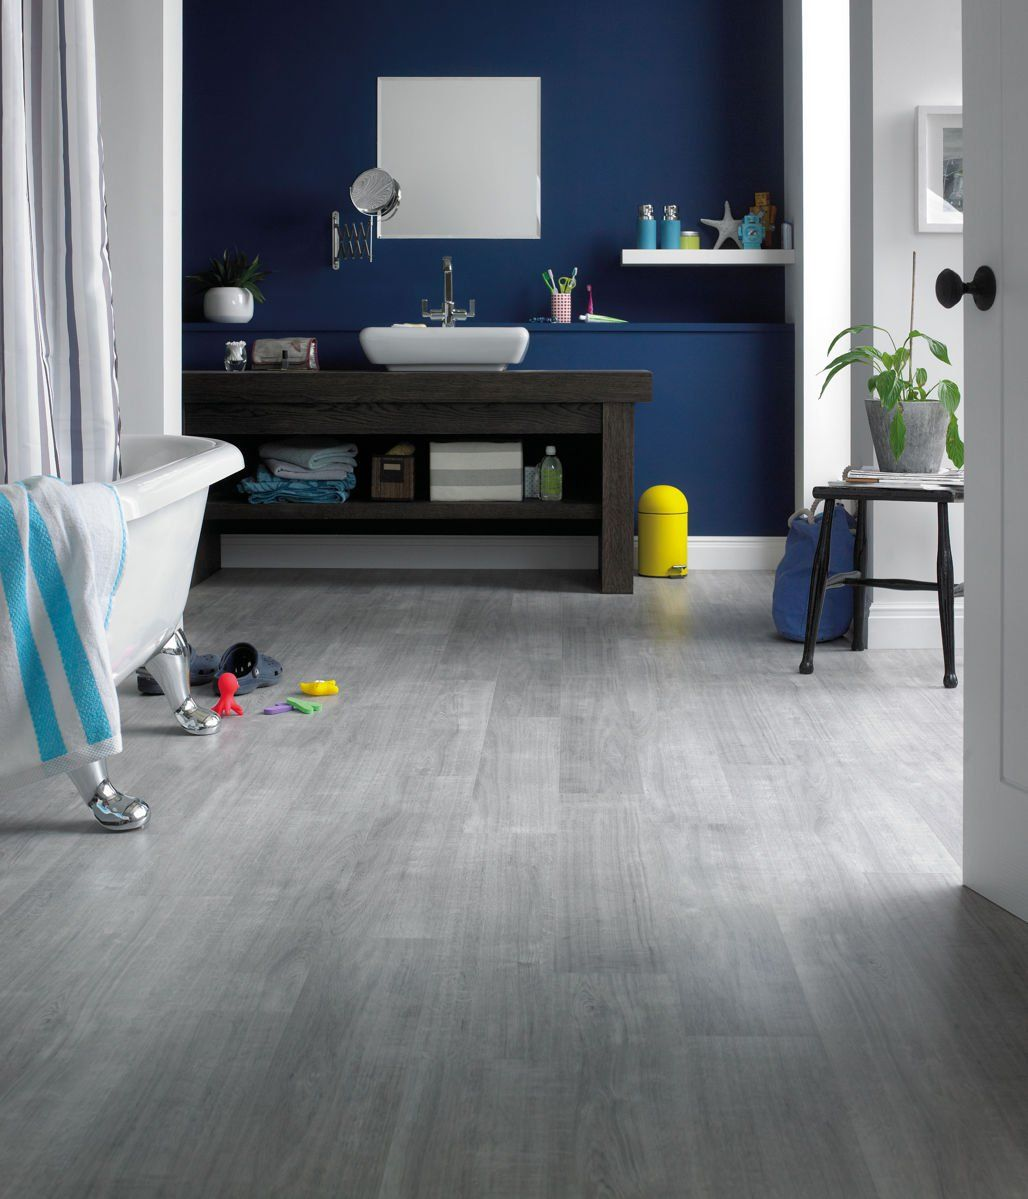 Karndean Opus Grano WP311 vinyl flooring gives offers a